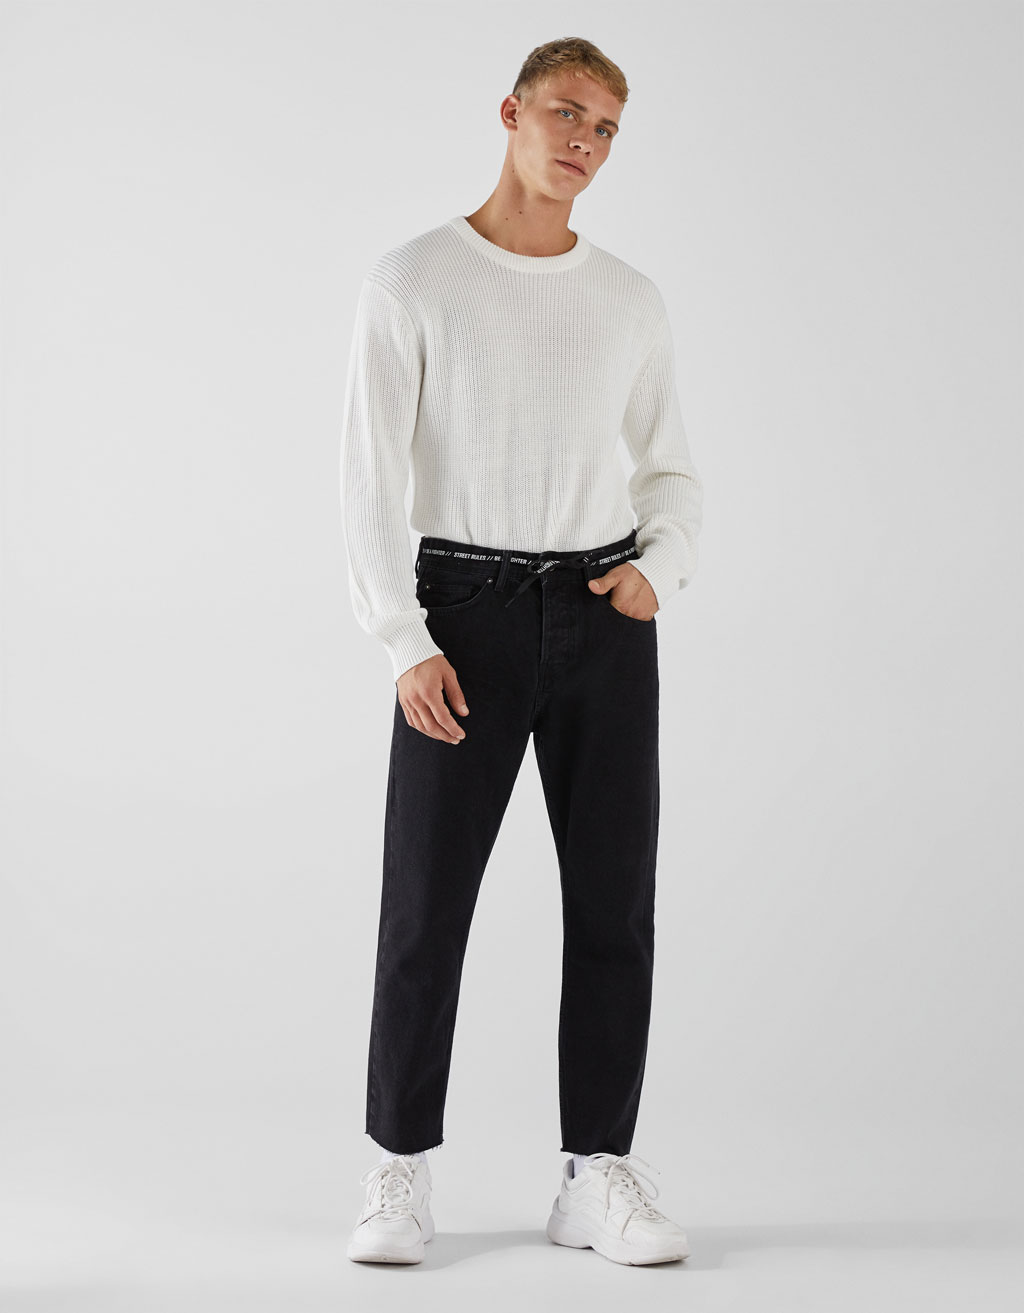 Cropped Jeans With Cord by Bershka